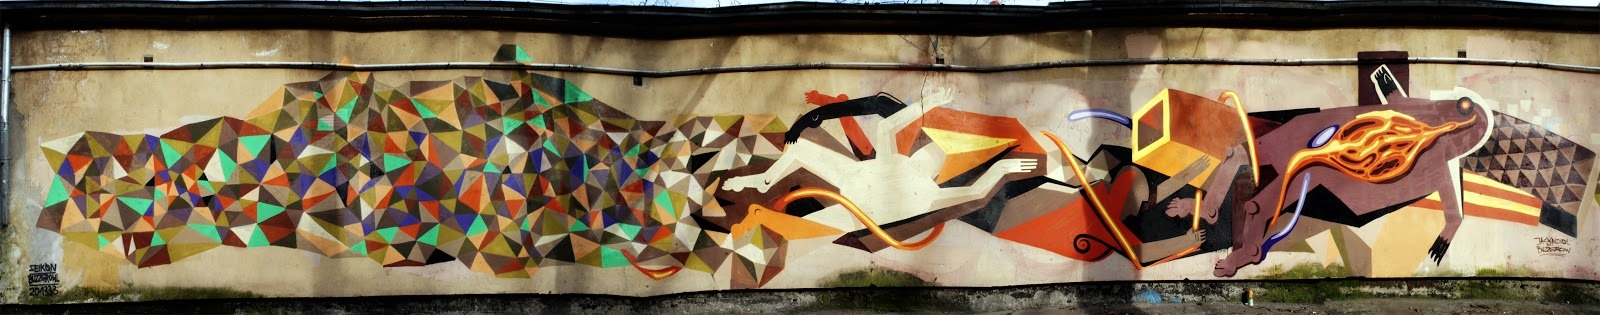 Seikon x Jacyndol New Mural In Gdansk, Poland StreetArtNews, streetartnews.net After his recent stop by Zukowo, Poland (covered), Seikon is back in Gdansk where he just completed this new piece with his friend Jacyndol.With this massive wall, Seikon combined some of his colourful geometric line-based imagery with Jacyndo…  Seikon x Jacyndol New Mural In Gdansk, Poland http://flip.it/xnQRO